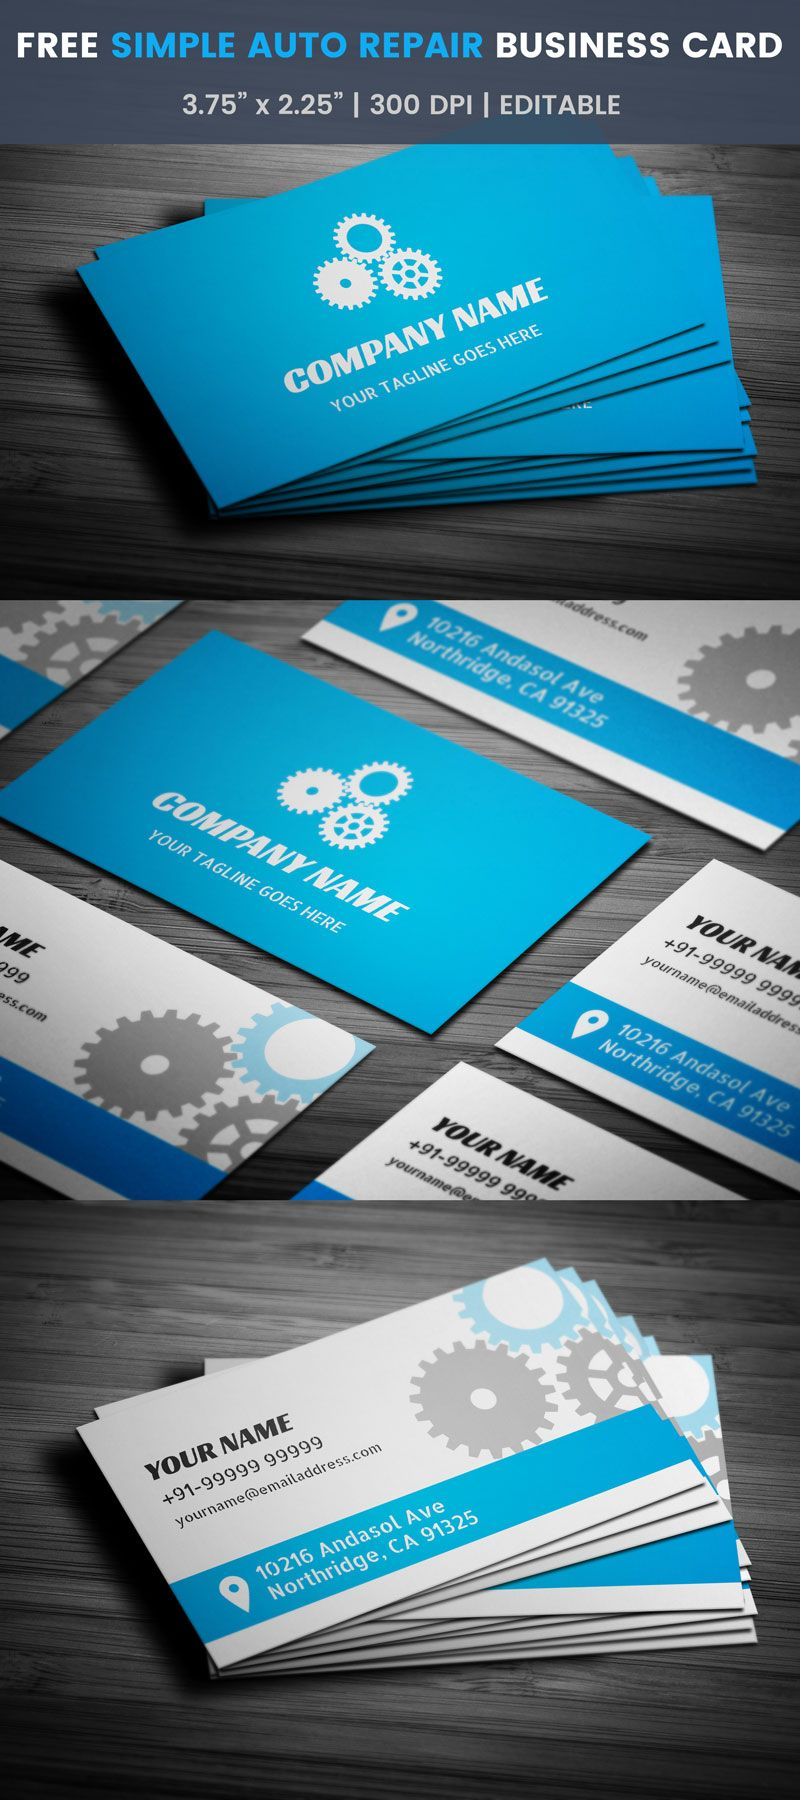 Simple Auto Repair Business Card Full Preview Free Business Card Templates Business Cards Printing Business Cards Mechanic business cards template free